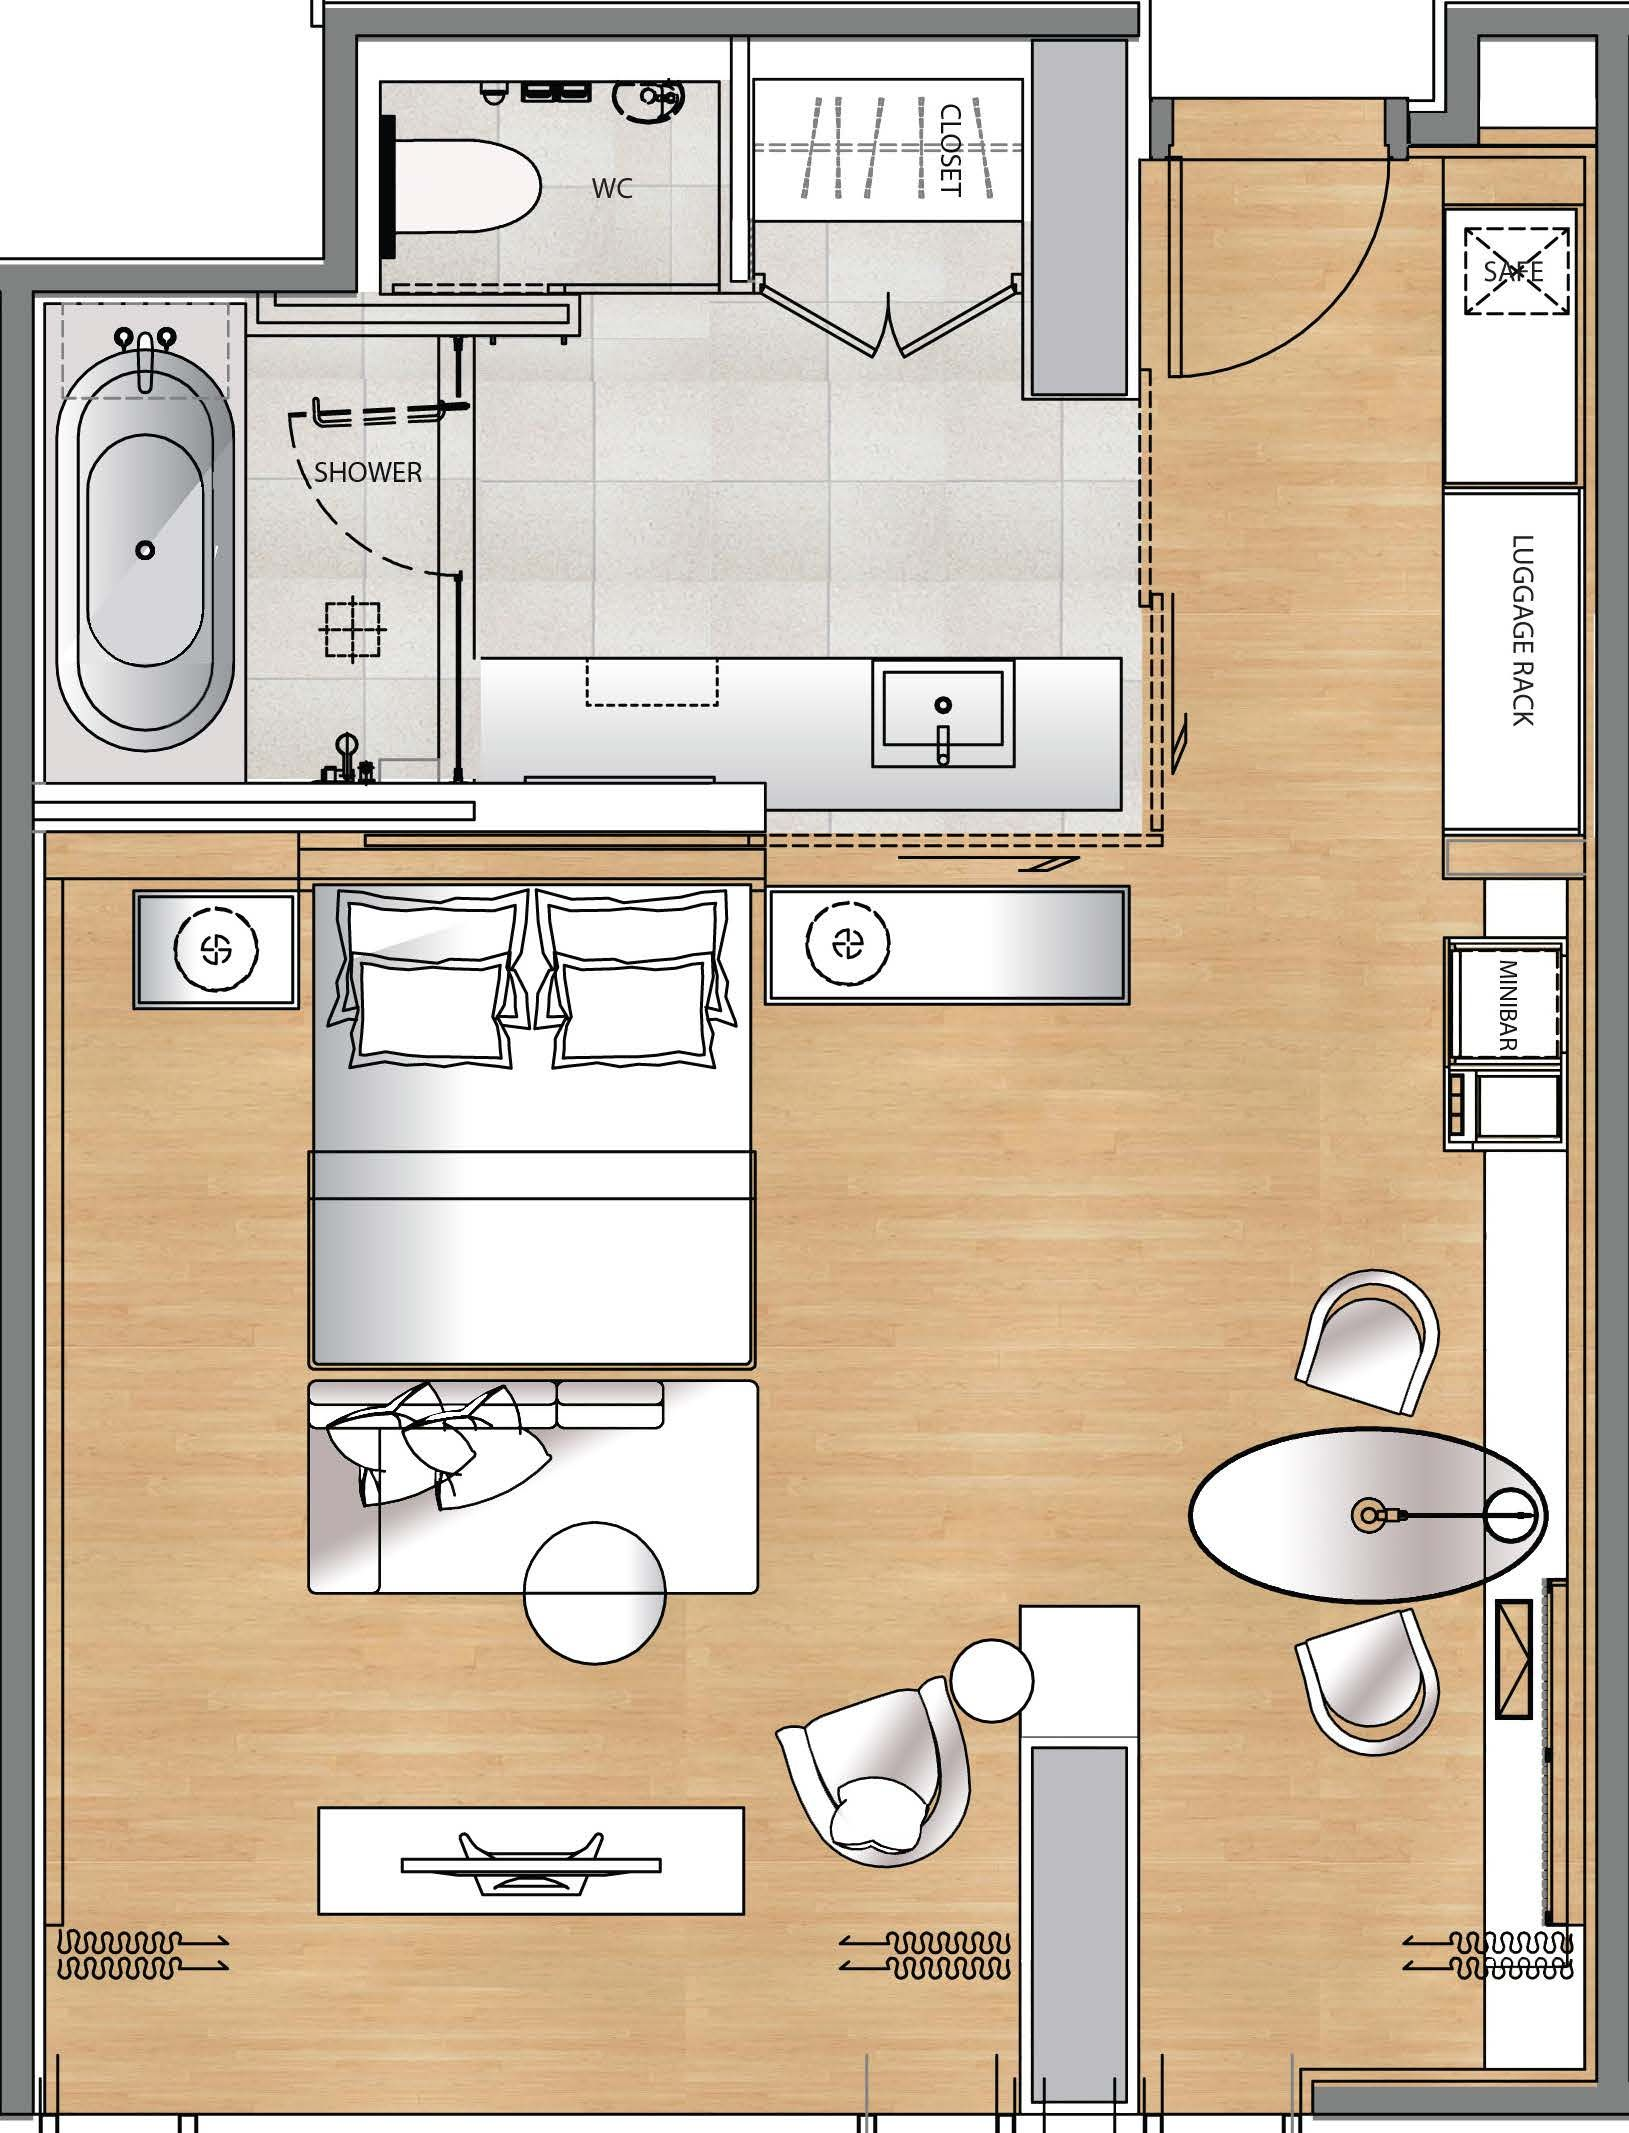 Hotel gym floor plan google search hotel rooms Bedroom layout design